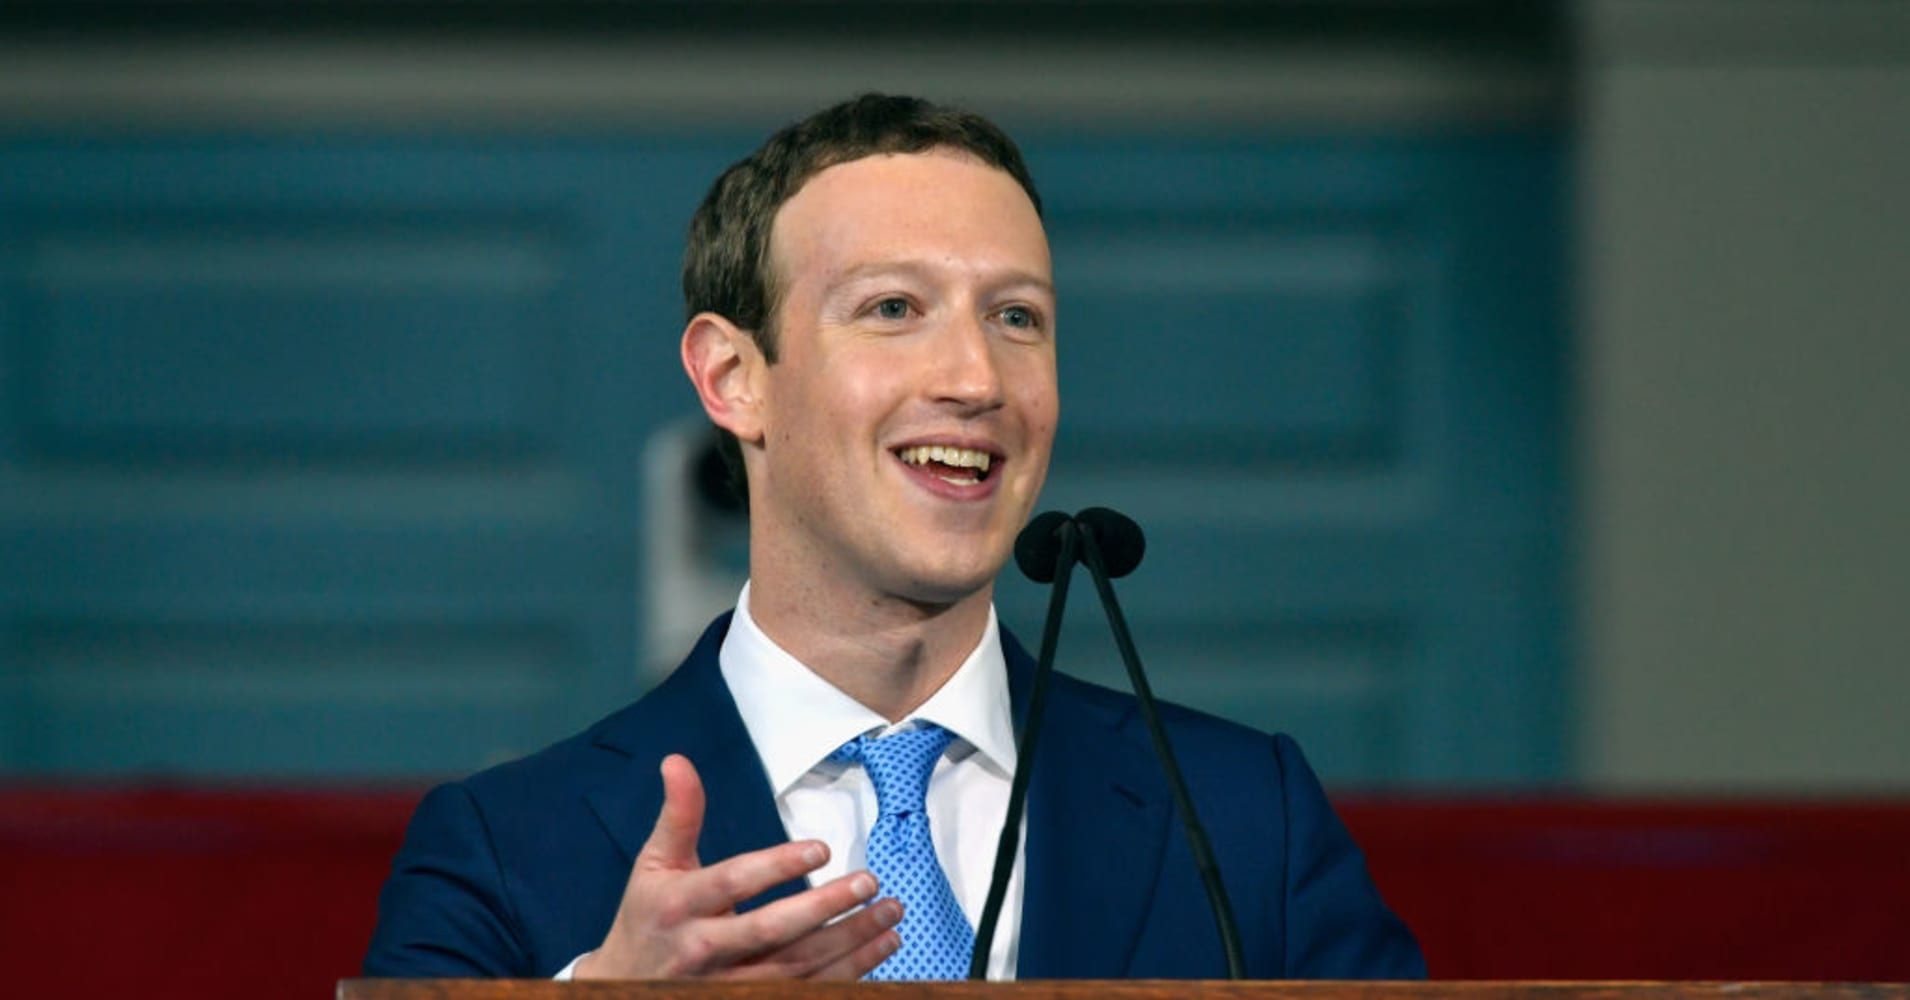 Zuckerberg finally bags that Harvard degree